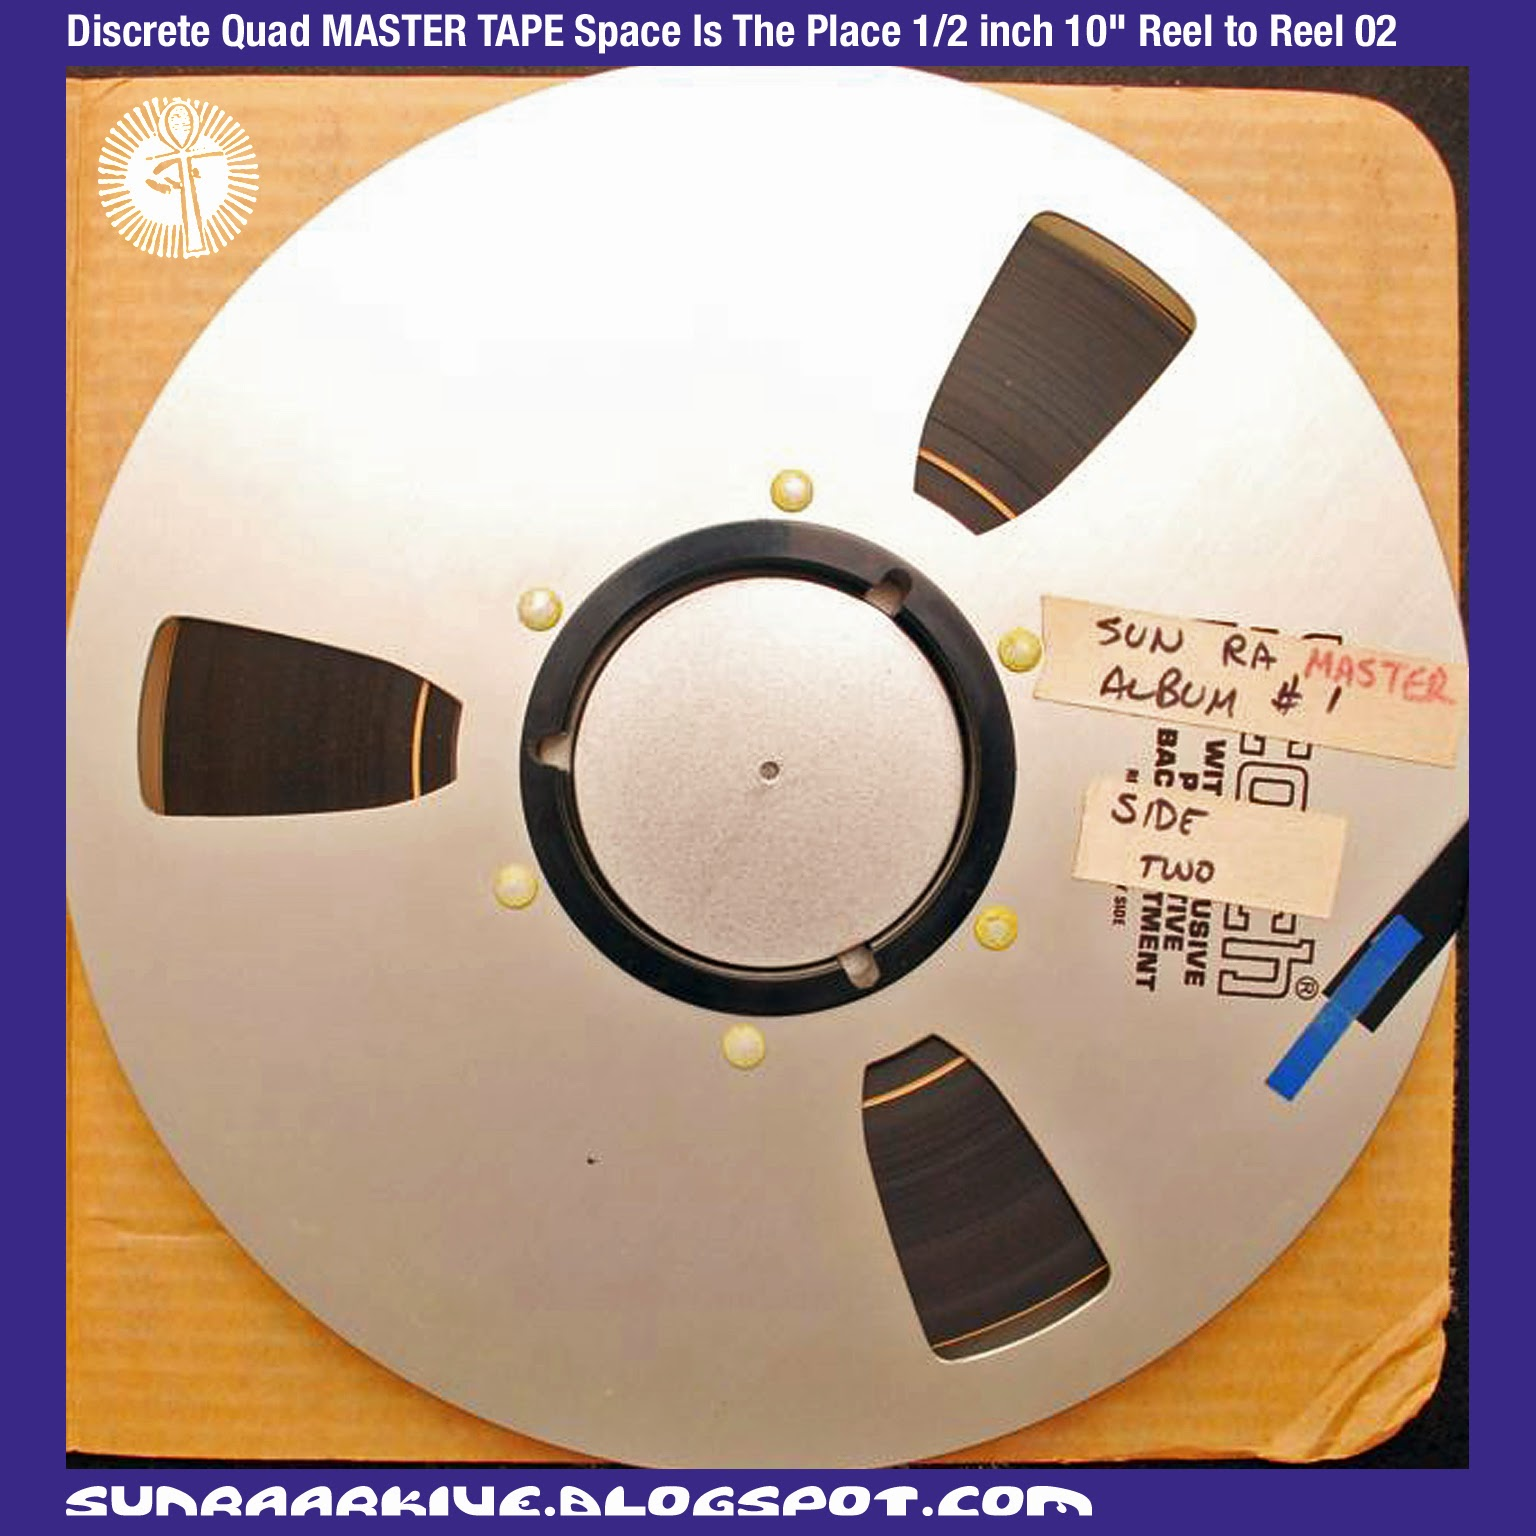 "Sun Ra Arkive: Sun Ra Reel To Reel Master Tapes from Ebay -  Discrete Quad MASTER TAPE Space Is The Place 1/2 inch 10"" Reel to Reel 02"